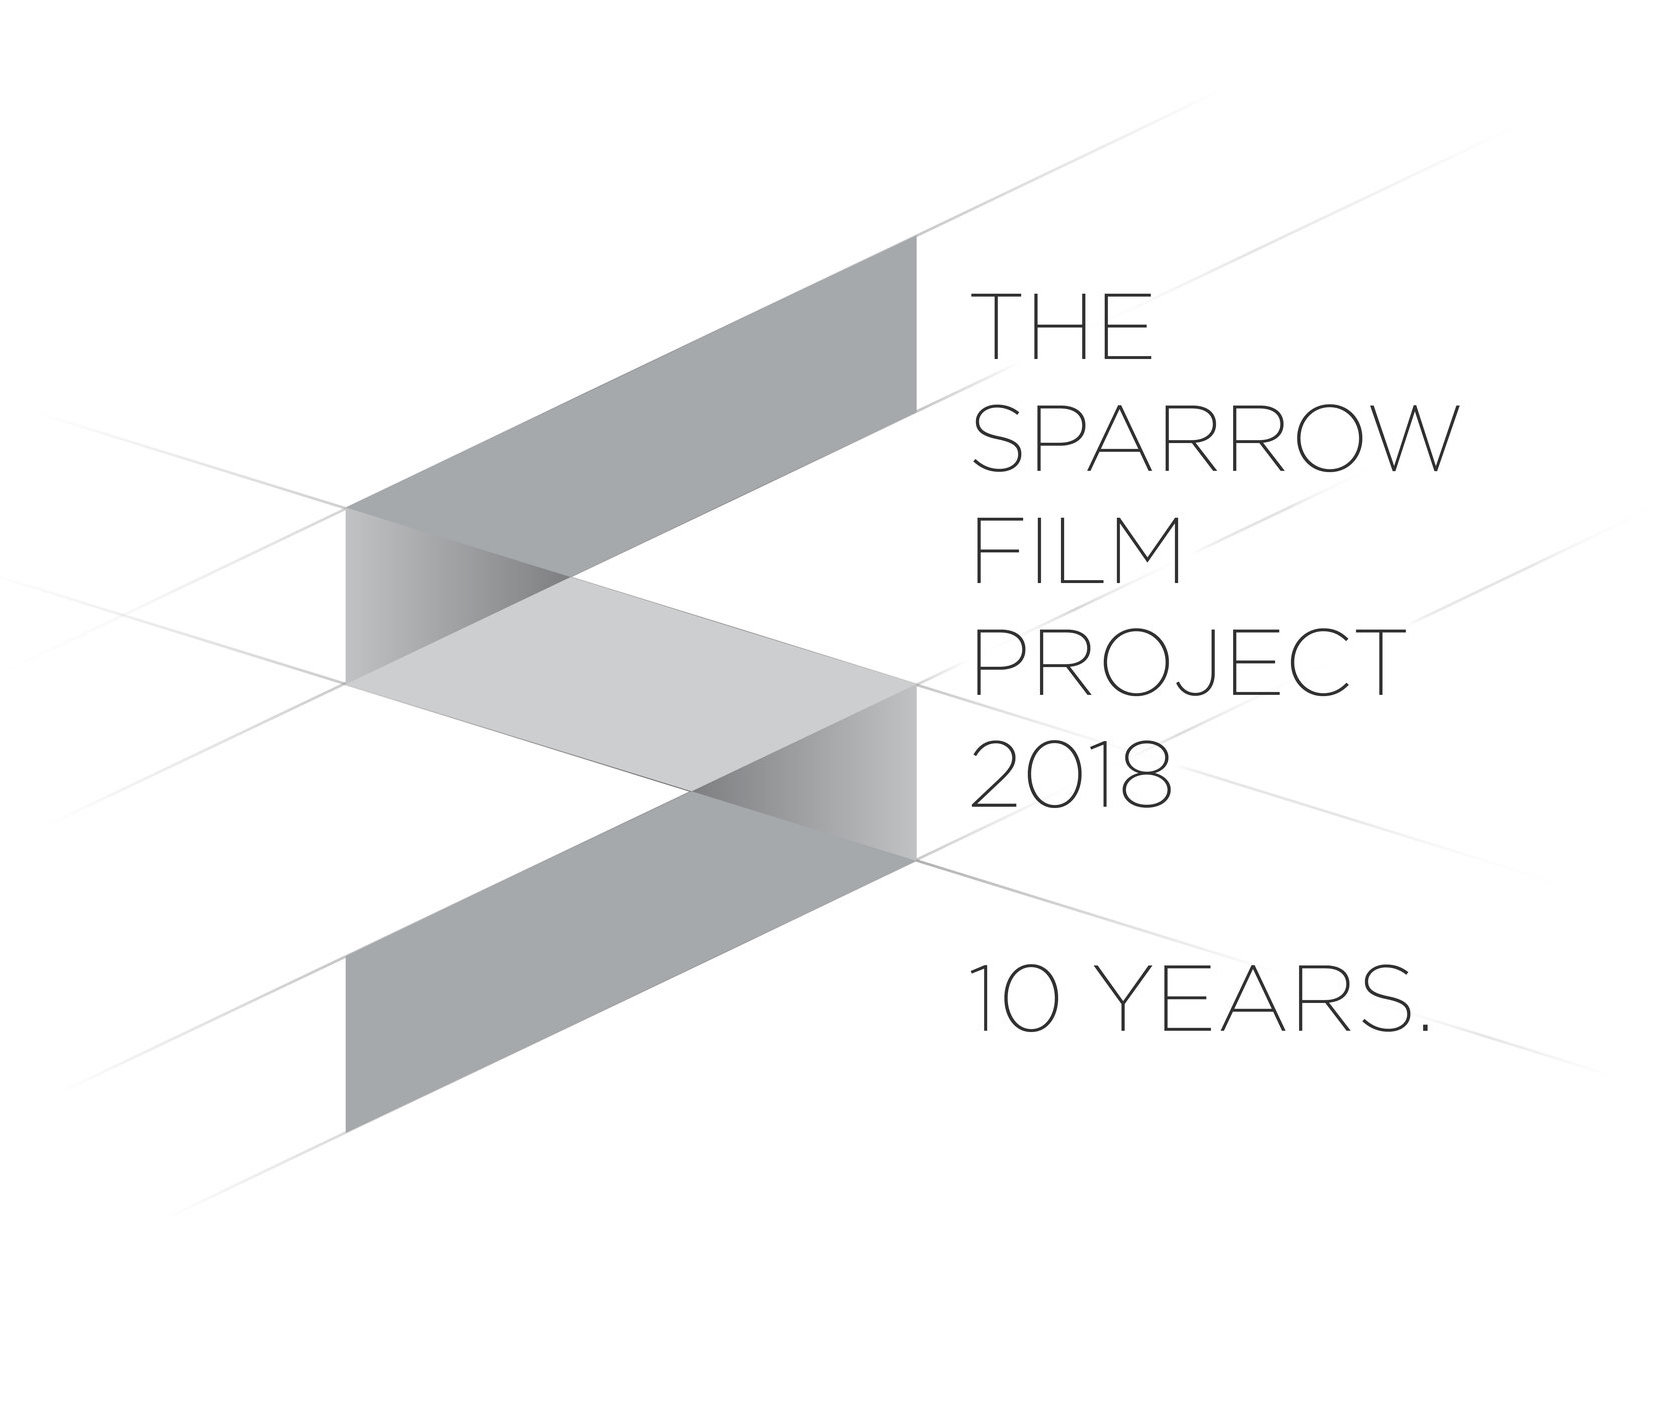 """- THE SPARROW FILM PROJECT has officially announced their 10th year anniversary film assignment and our creative partnership.This year, the filmmaking teams are challenged to create a 3-minute film juxtaposing two mediums (Art and Music), to explore how sound and vision inform their creation.We curated a selection of 100 diverse music tracks from our original music library for filmmakers to use, capturing everything from modern cinematic ambient soundscapes to grungy rock, to east coast hip hop, blockbuster orchestral pieces, dramatic electronic tracks, and eccentric selections.Zach Abramson, composer/producer and partner at YouTooCanWoo, is happy to see two of his creative communities combine forces: """"As a longtime Astoria resident I'm thrilled to become a bigger part of this growing community of creators, and happy to see how the Sparrow Film Project has expanded their reach beyond the neighborhood. I can't wait to meet all the participants and hear what they can do with our music."""